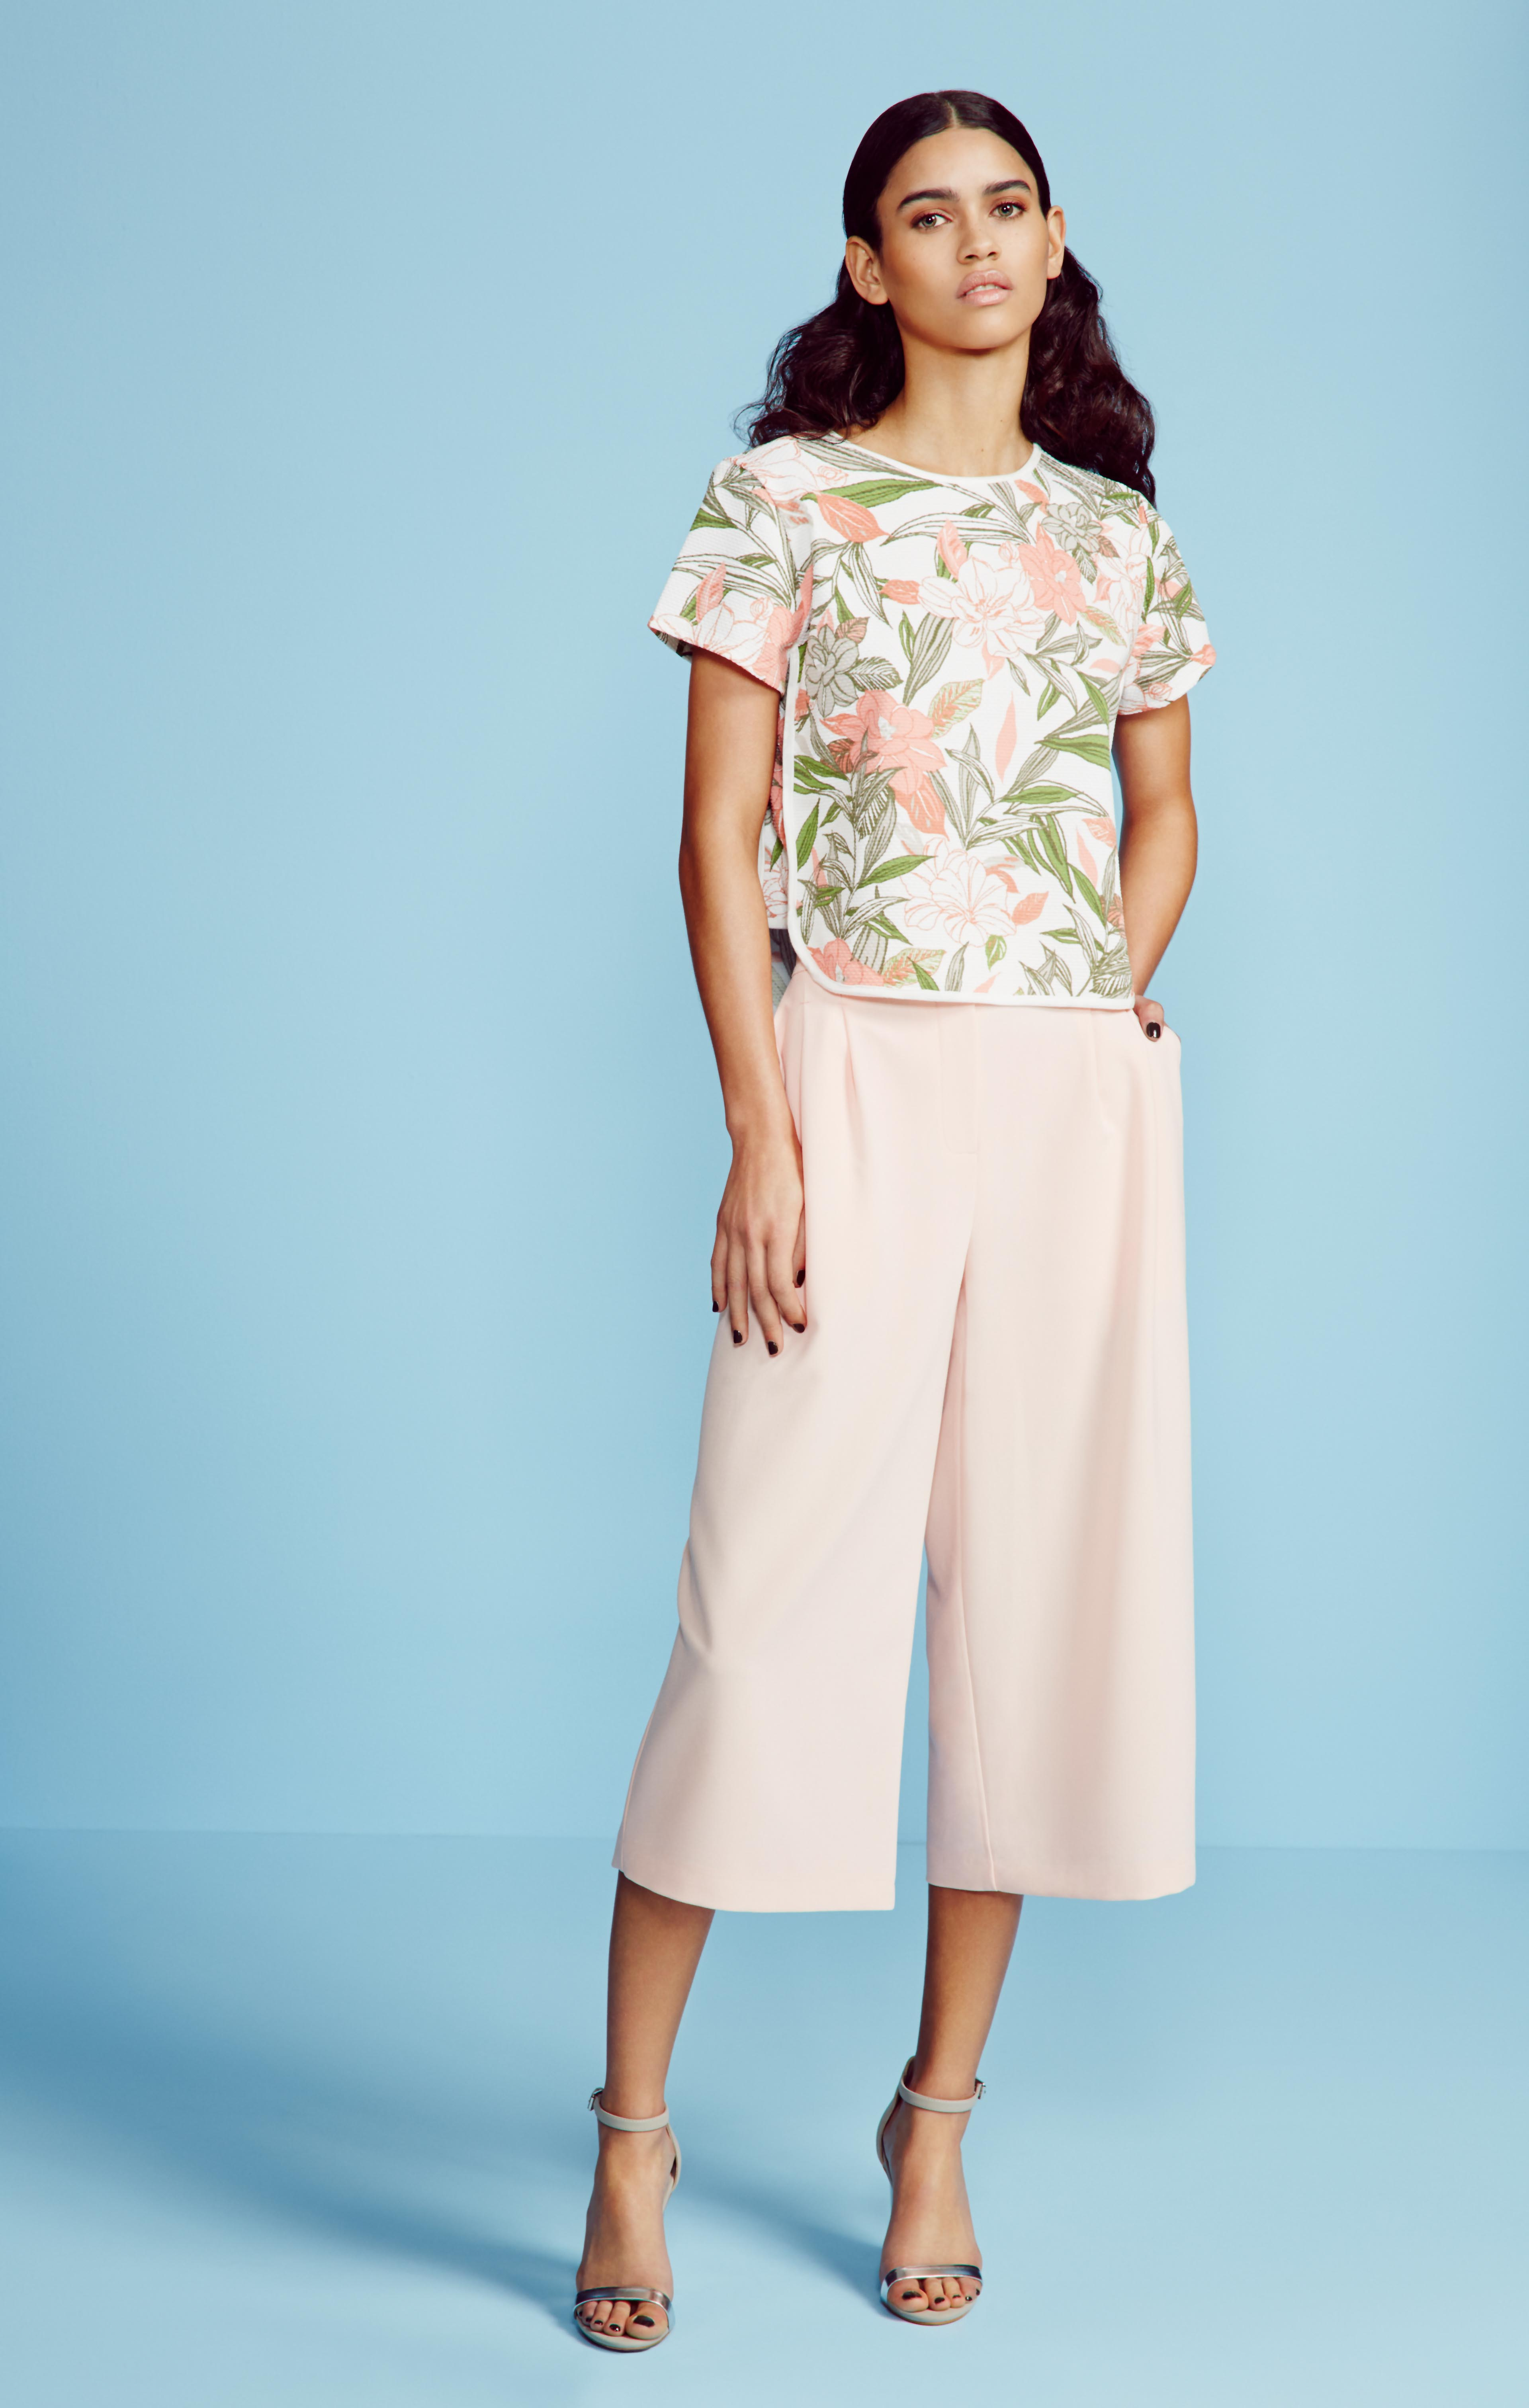 Culottes Comeback A Short Cut To Style Styletto Mag